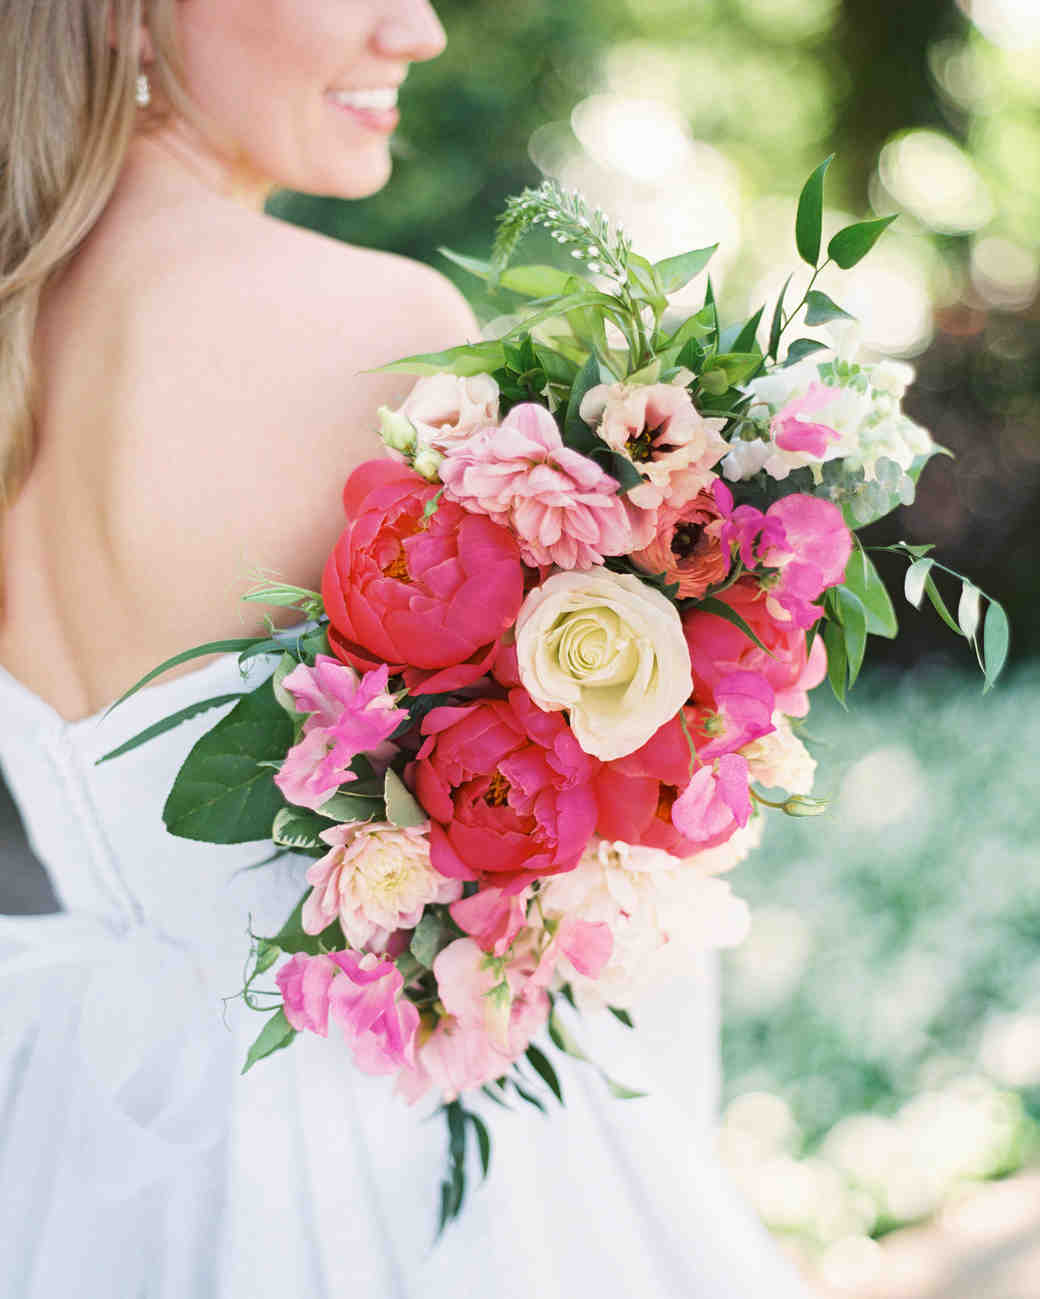 Spring Wedding: The 50 Best Spring Wedding Bouquets